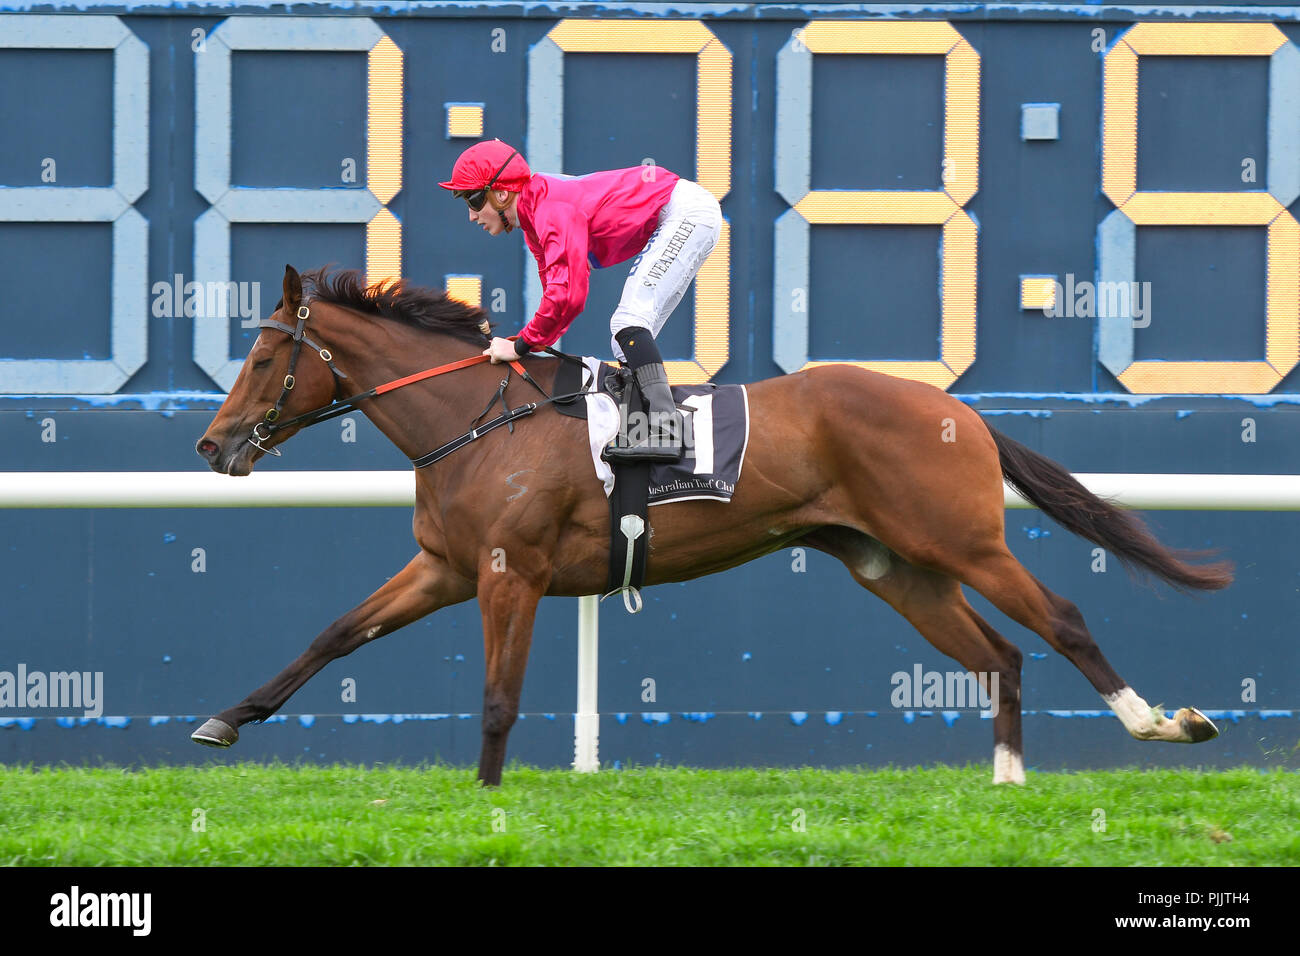 Sydney, Australia. 08 Sep 2018. Jockey Sam Weatherley rides Mandylion to victory in race 1, the Canadian Club Handicap, during Run To The Rose Day at the Rosehill Gardens Racecourse, Sydney, Australia. Credit: Rafal Kontrym/Alamy Live News. - Stock Image